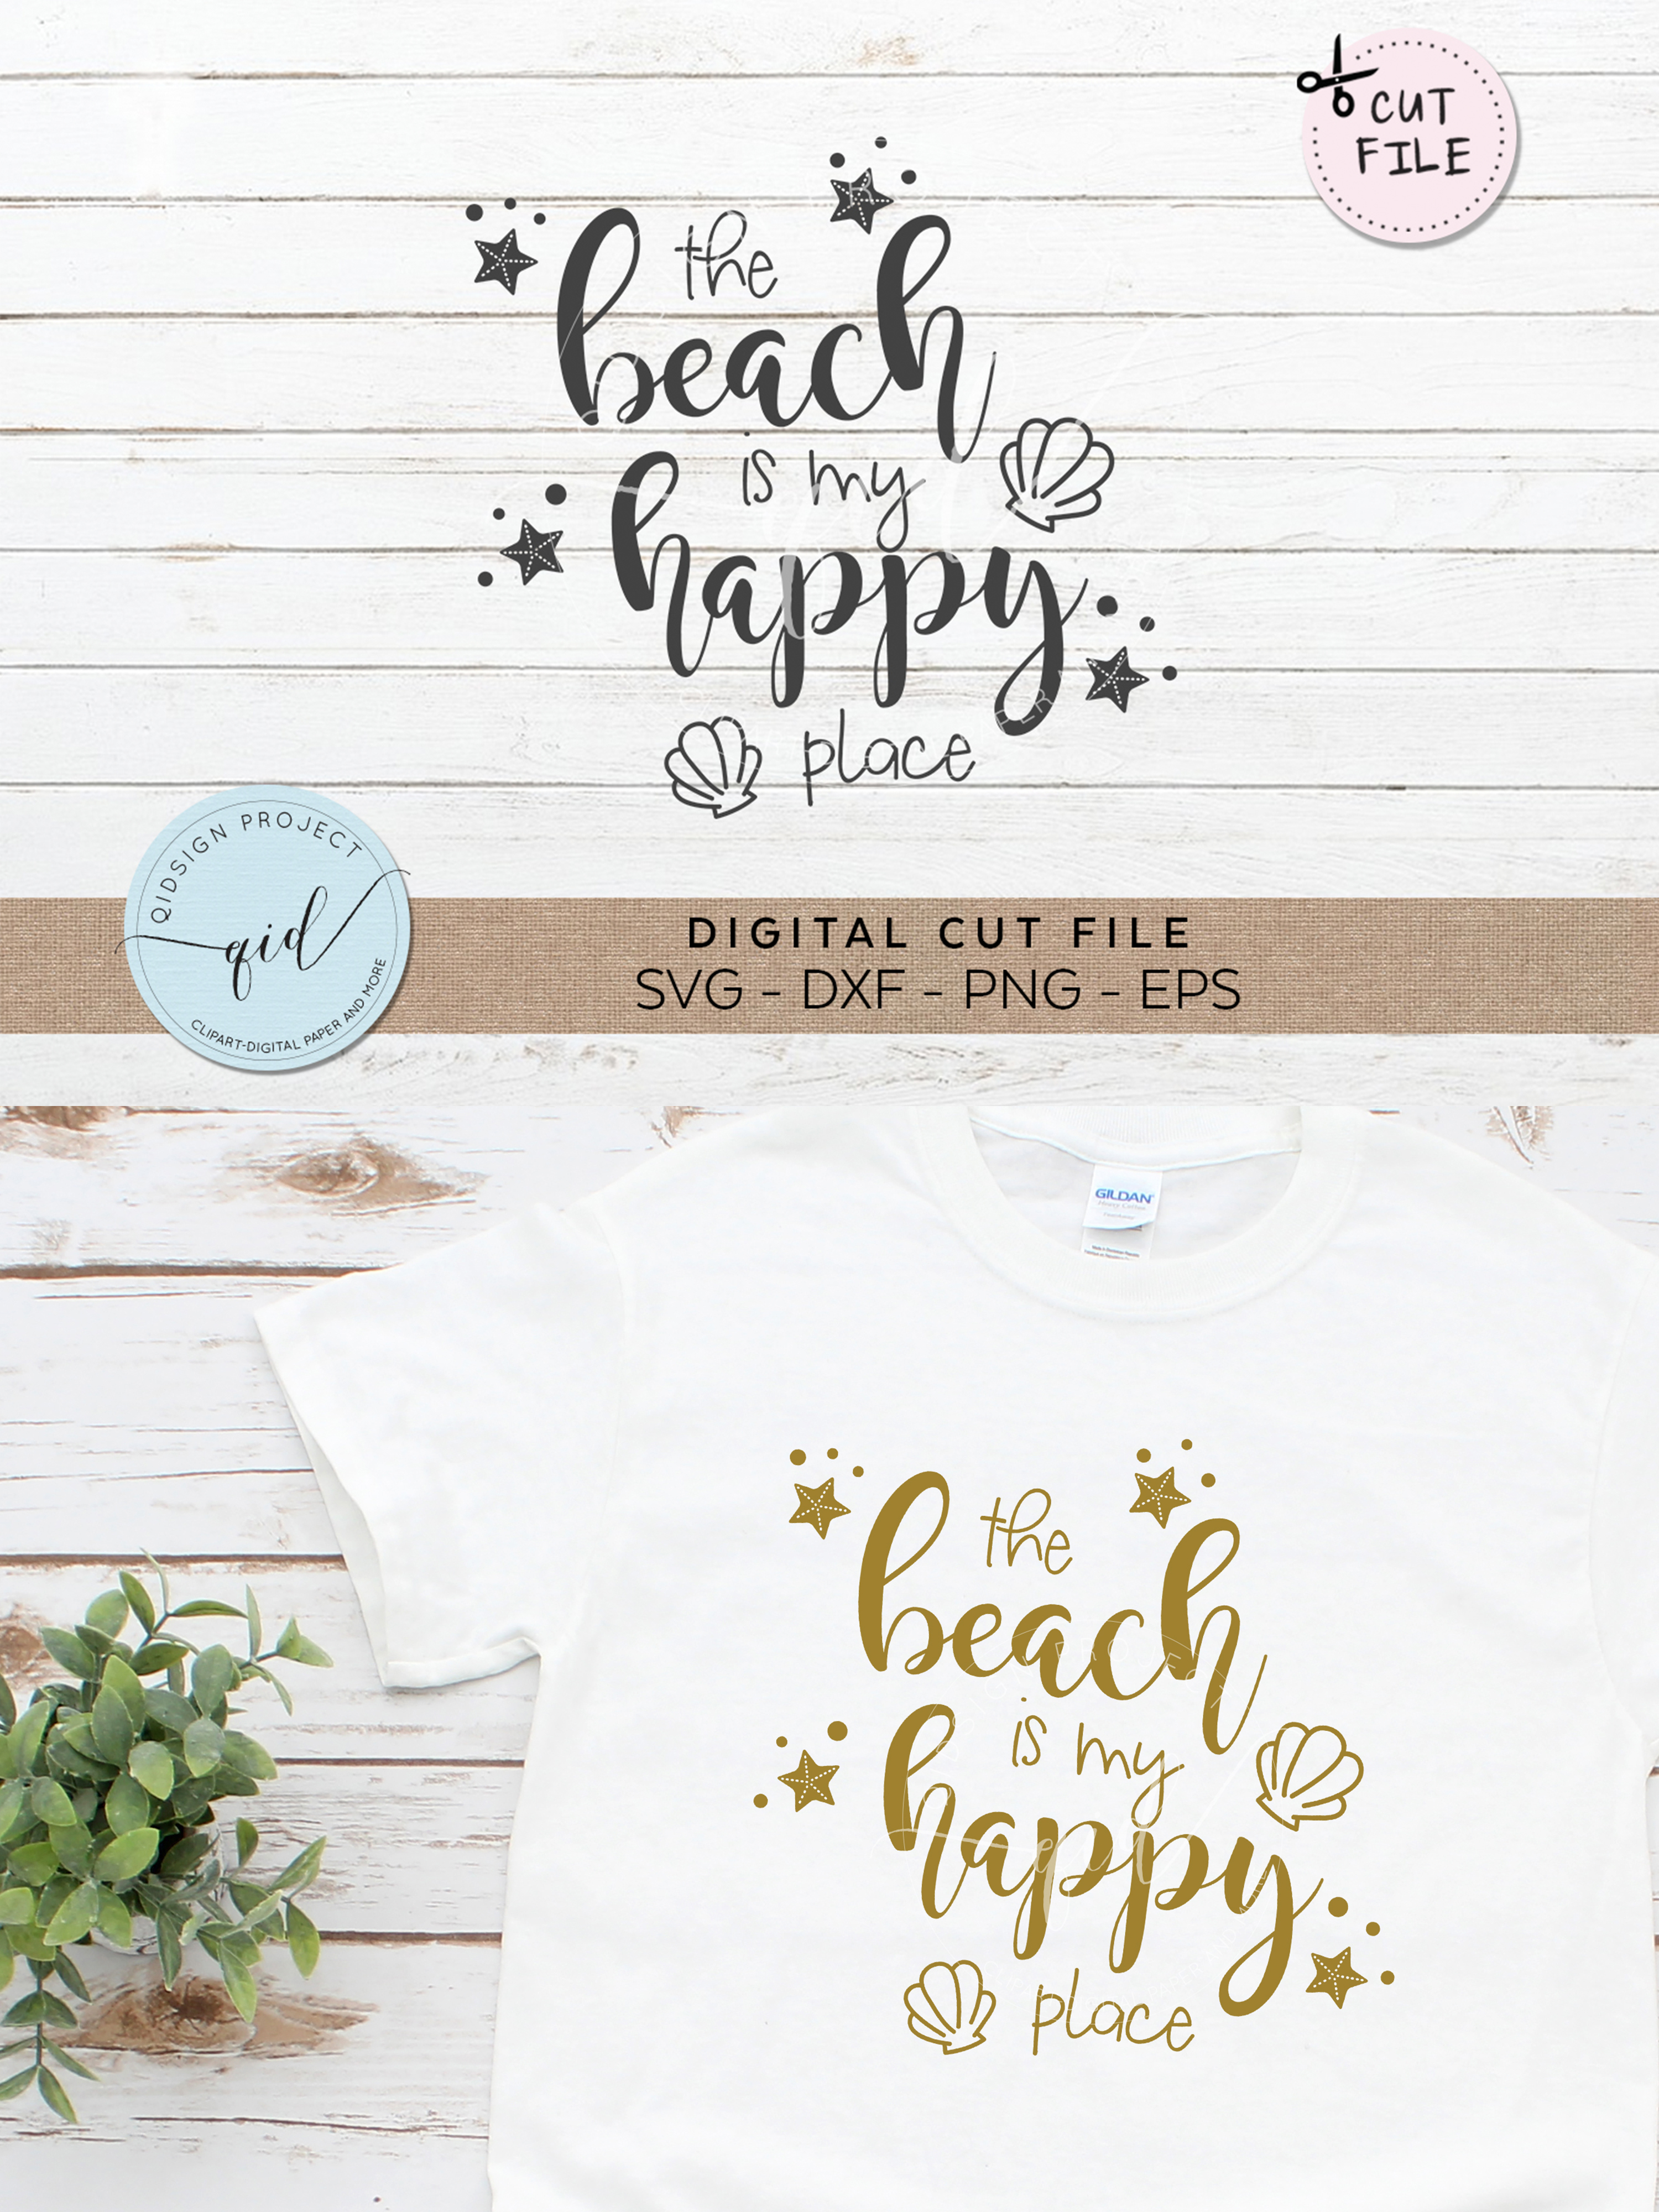 The Beach Is My Happy Place SVG DXF PNG EPS example image 2